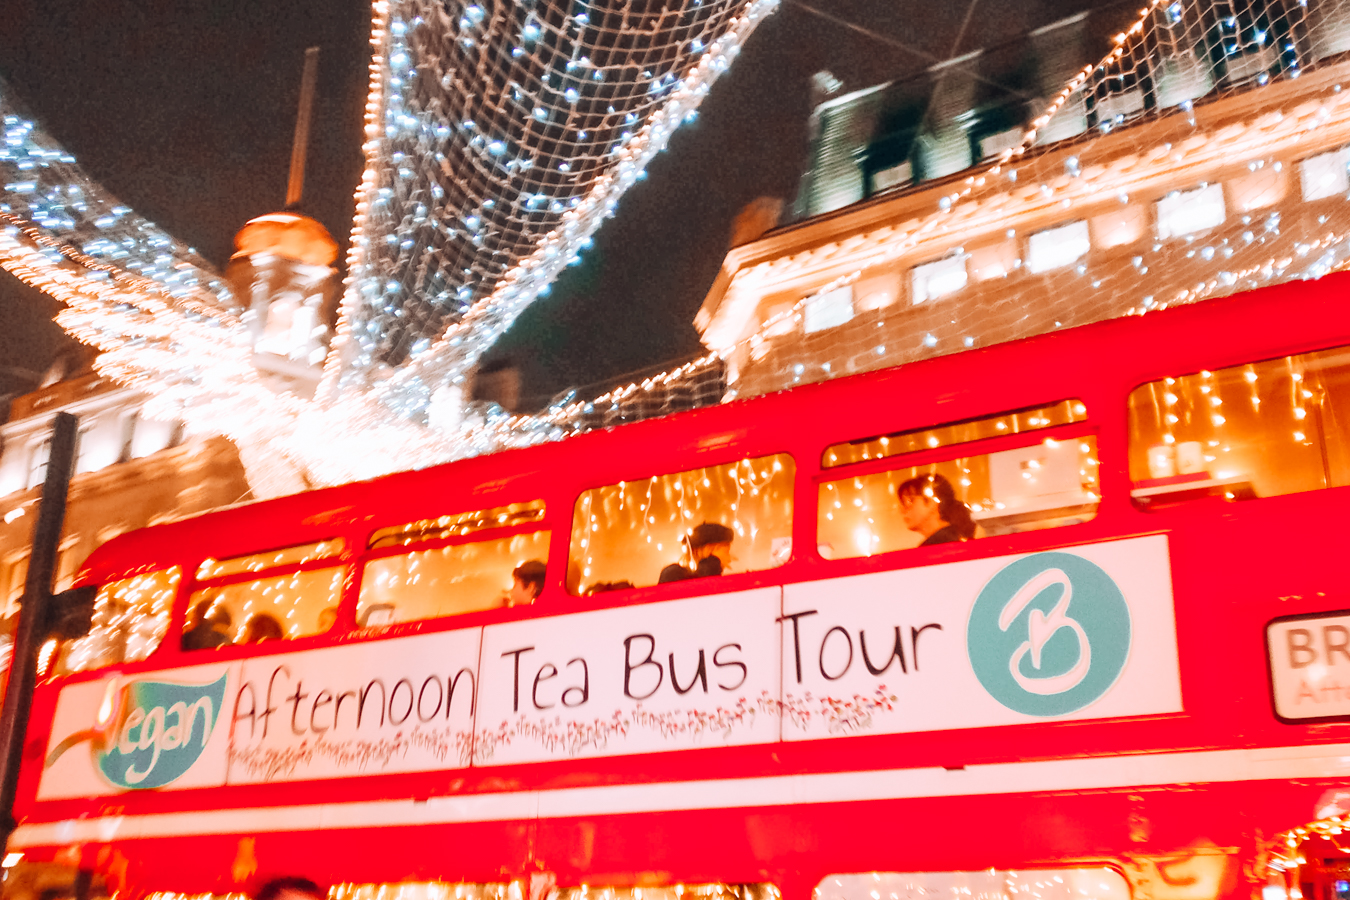 Red afternoon tea bus